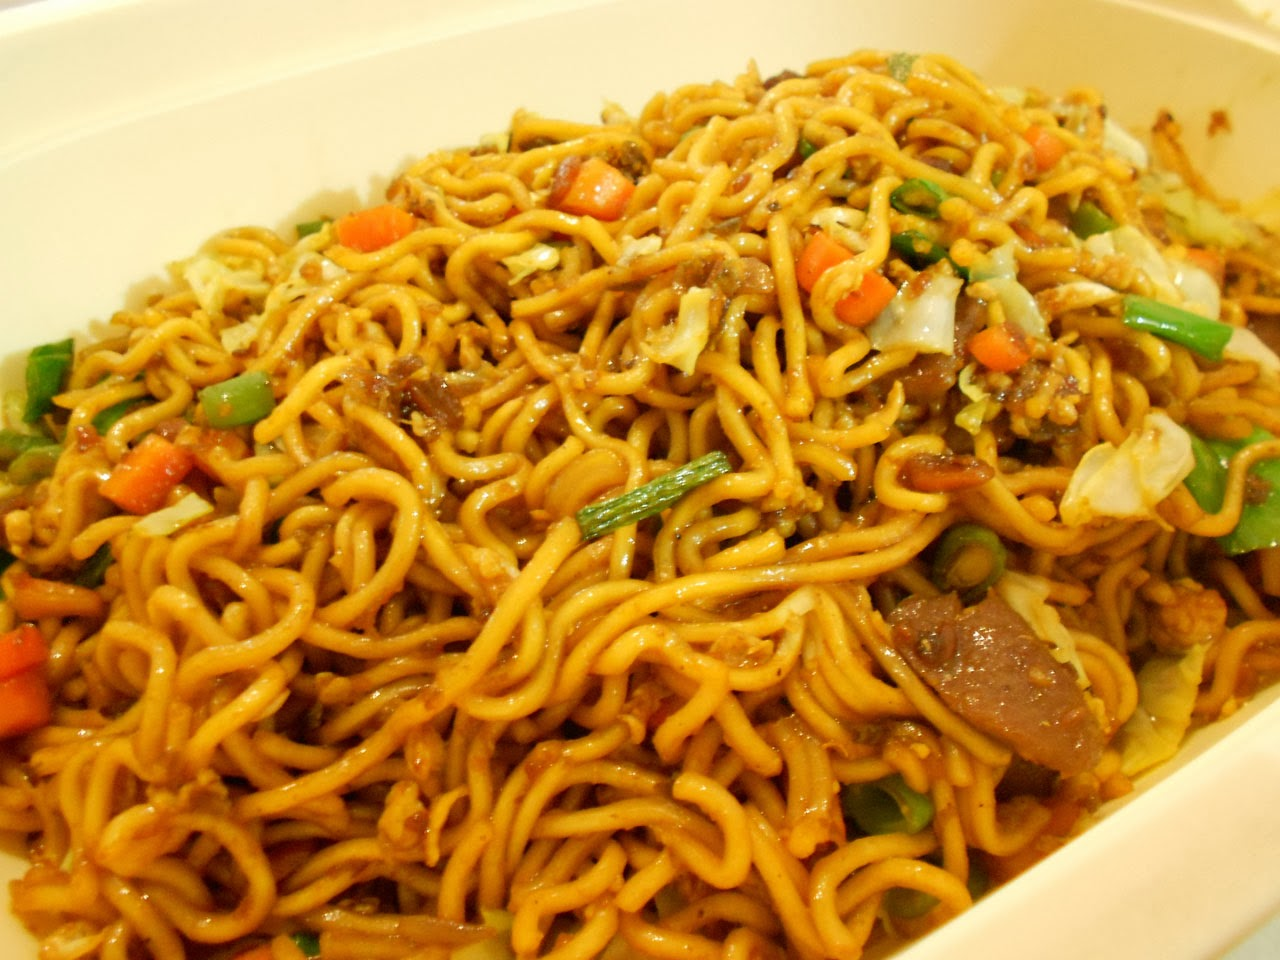 Mie Goreng Indonesian Fried Noodles Recipe Dishmaps Watermelon Wallpaper Rainbow Find Free HD for Desktop [freshlhys.tk]